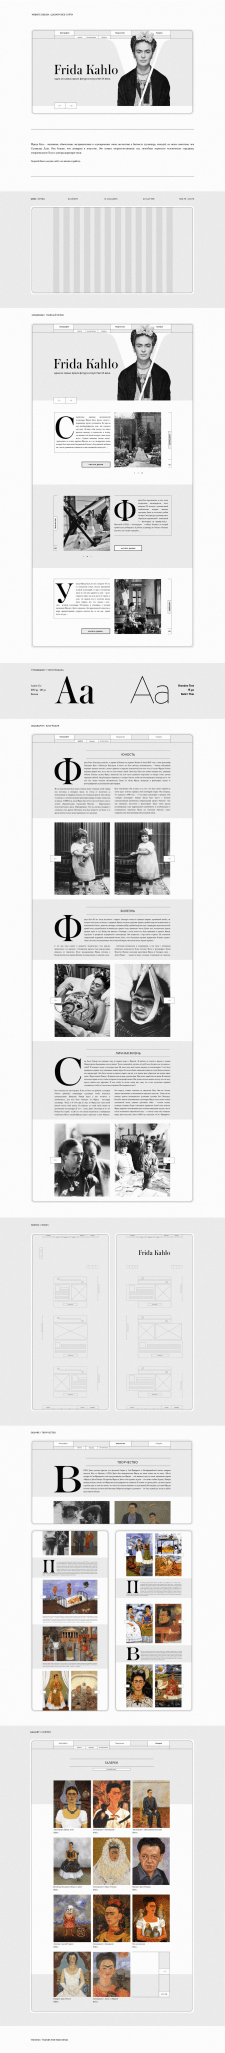 Frida Kahlo Website Design